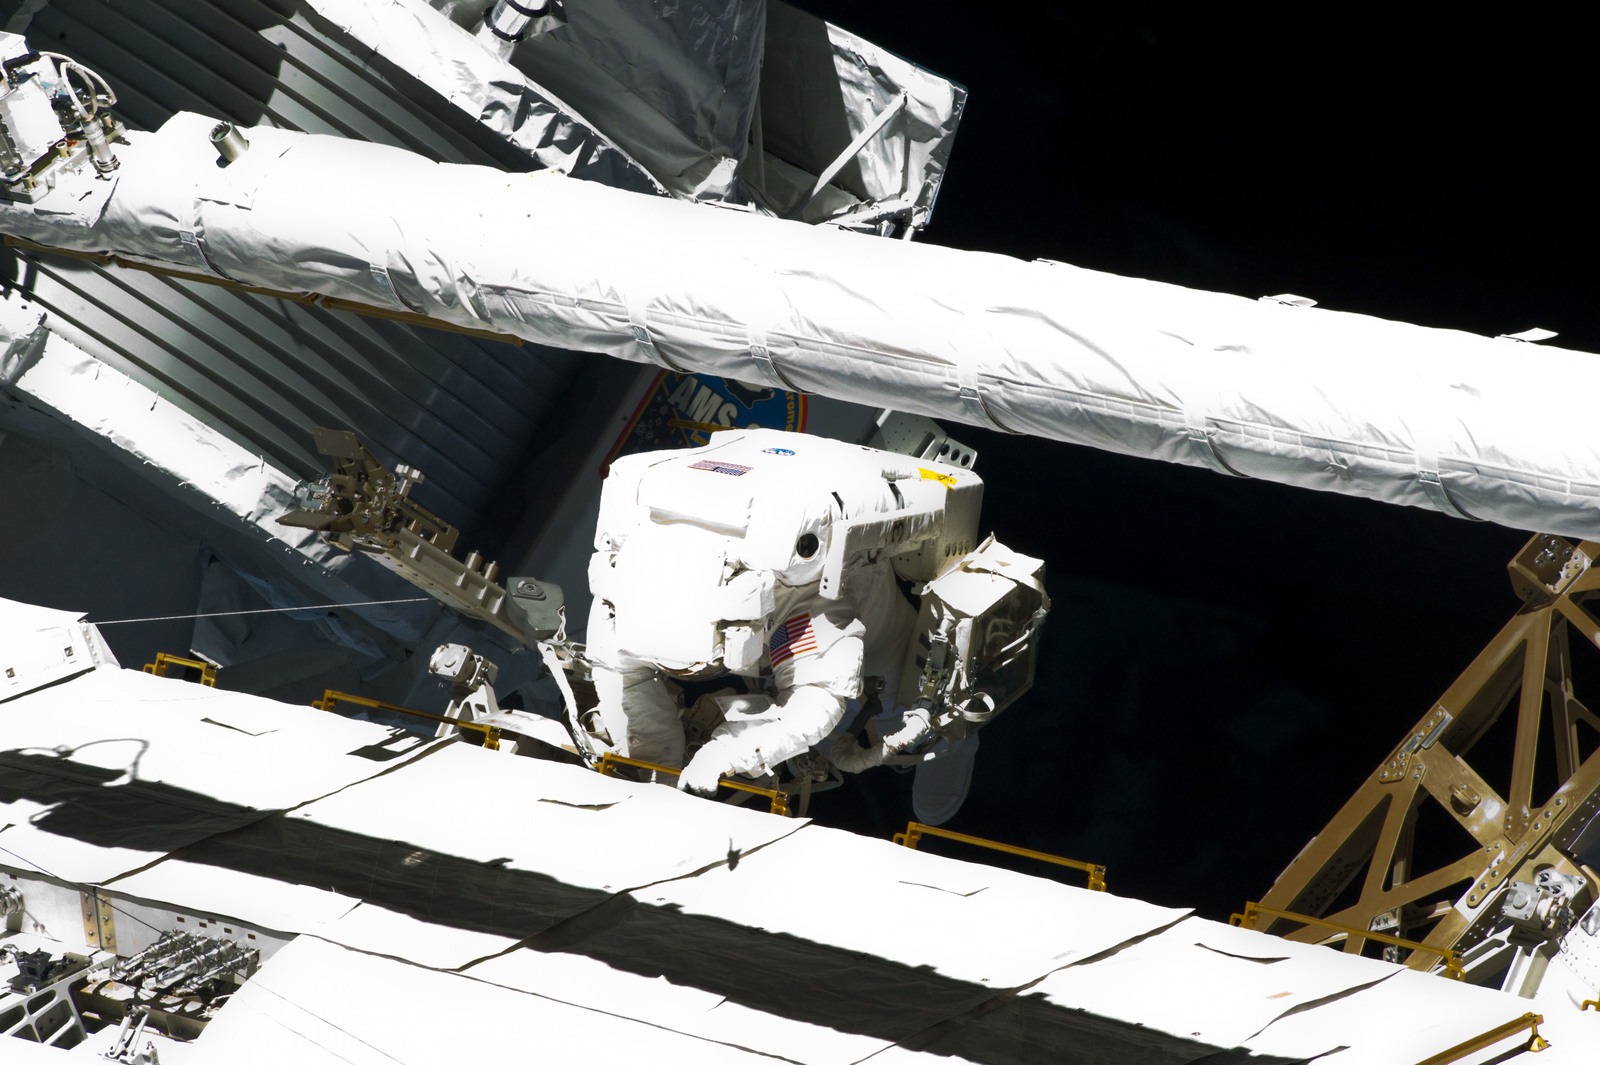 S134E009609 - STS-134 - View of STS-134 MS Fincke during EVA-4